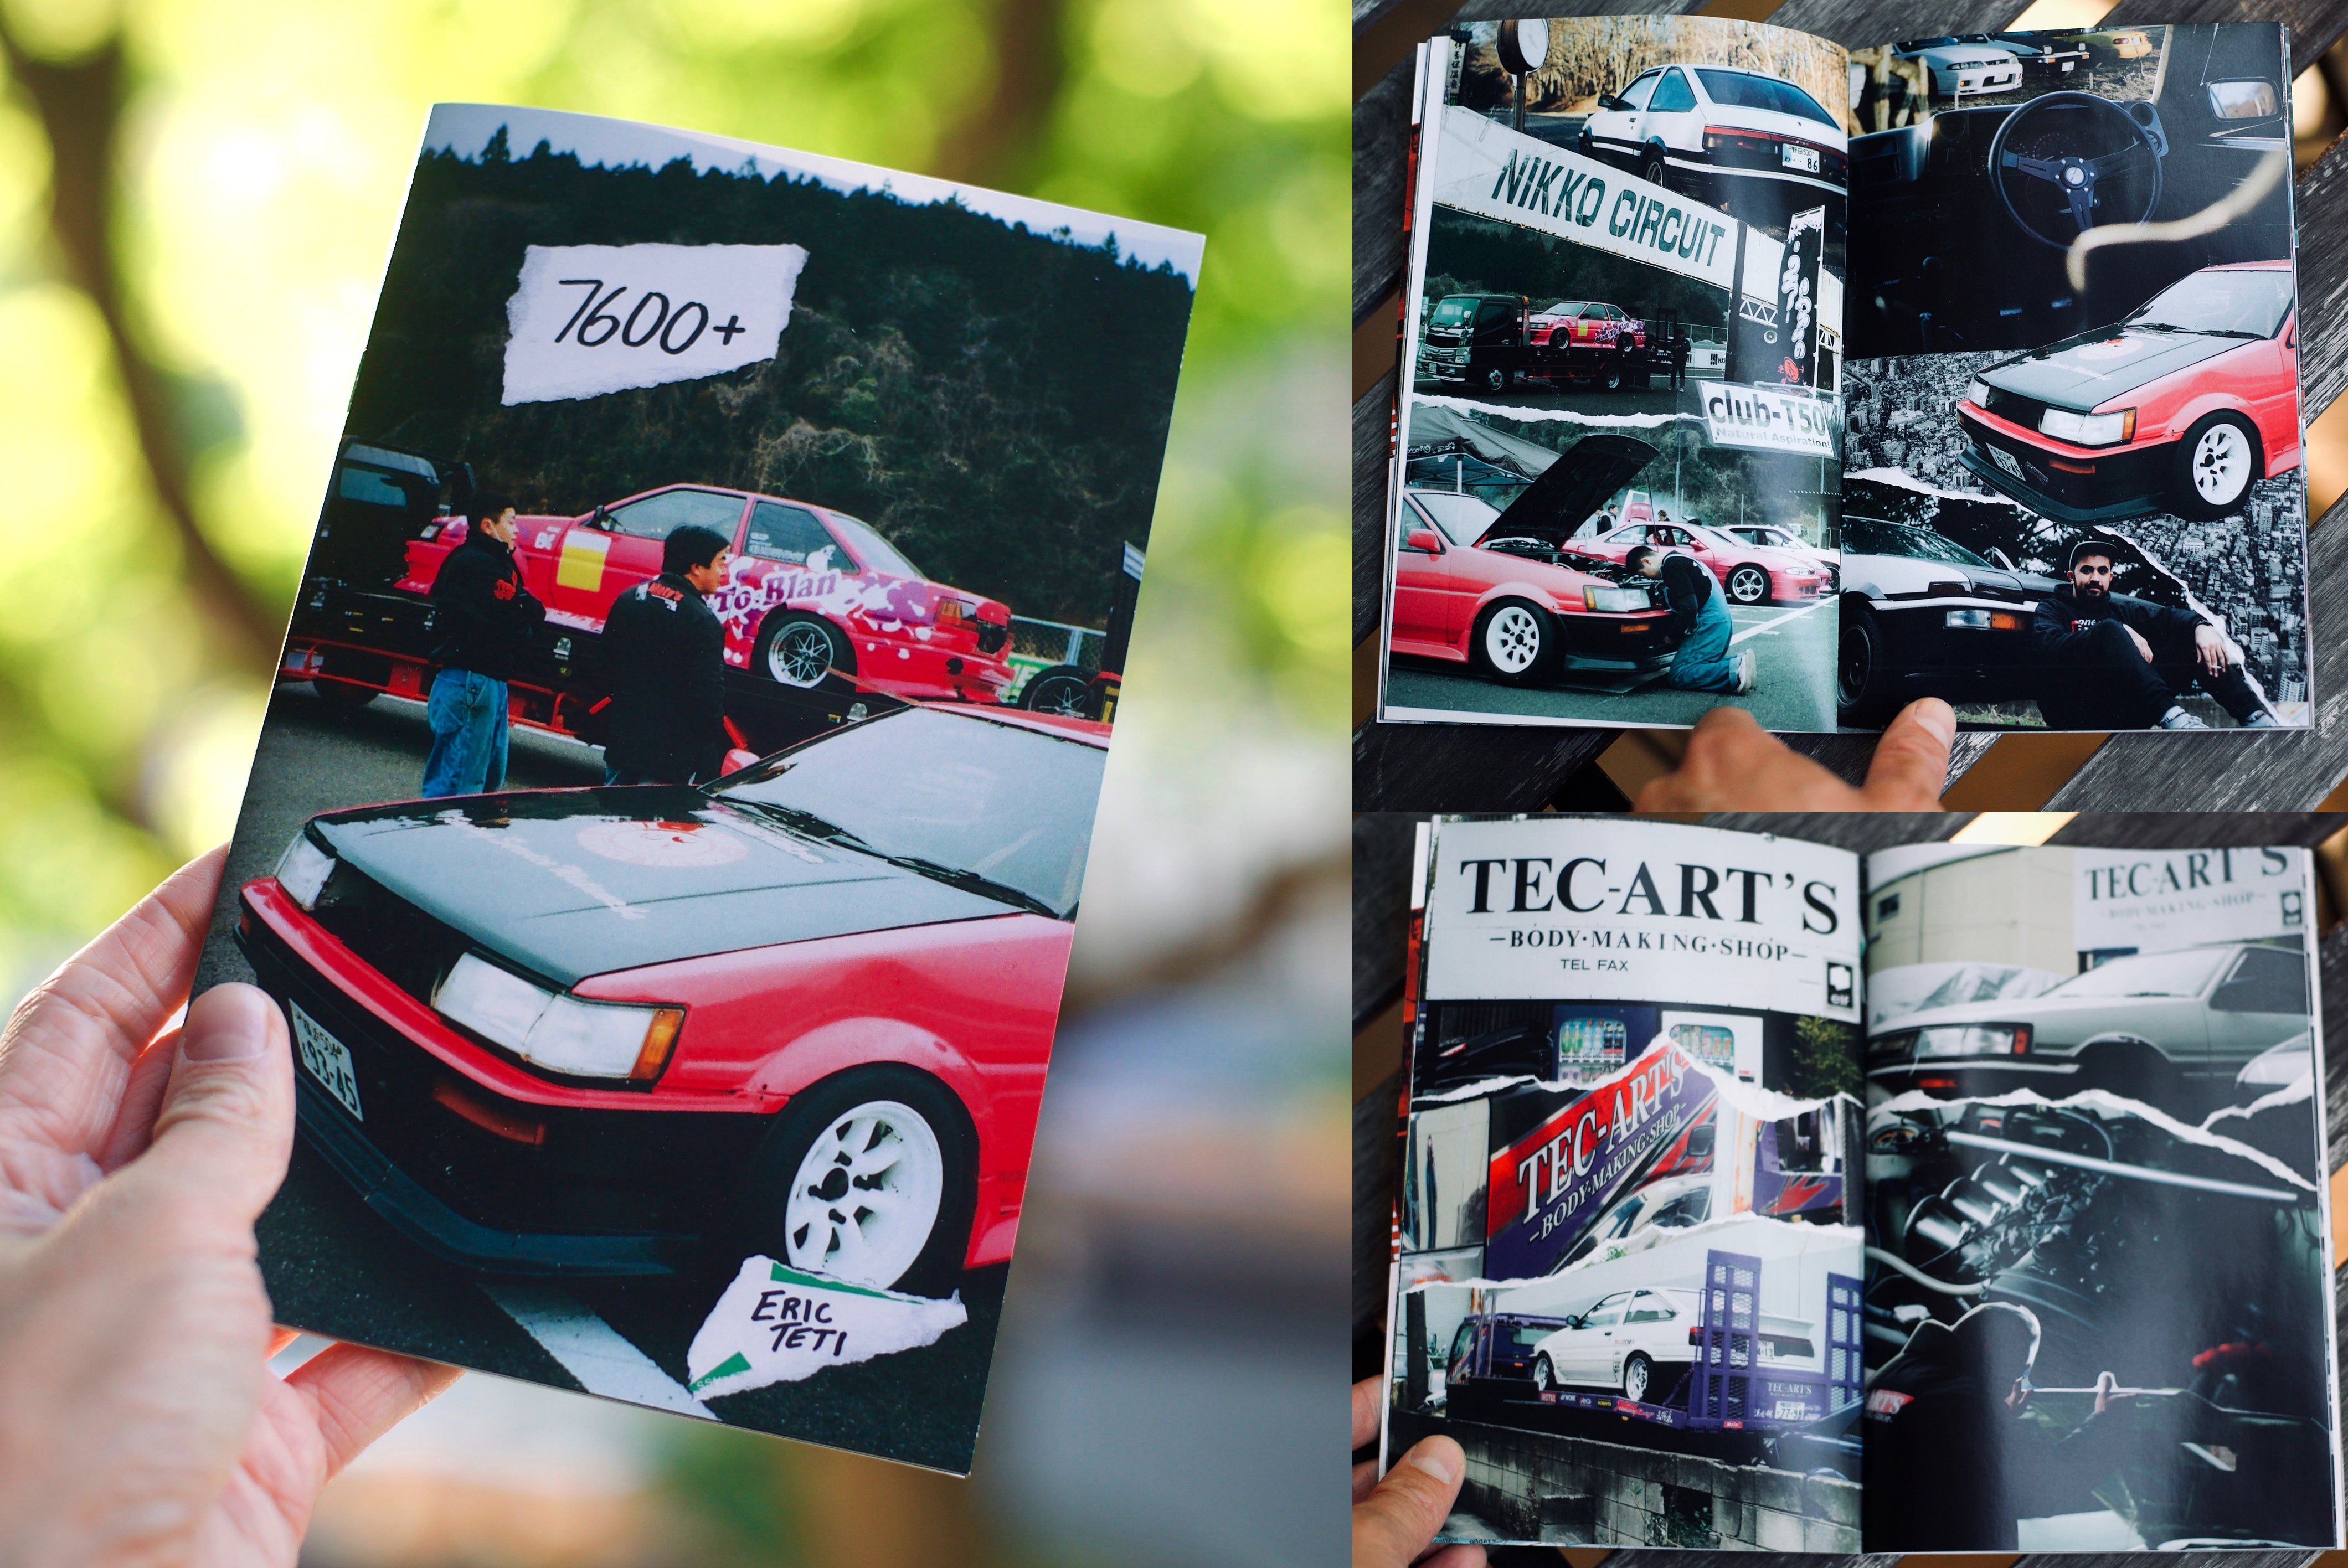 [Image: AEU86 AE86 - [Charity] AE86 magazine with 7600+ photos]